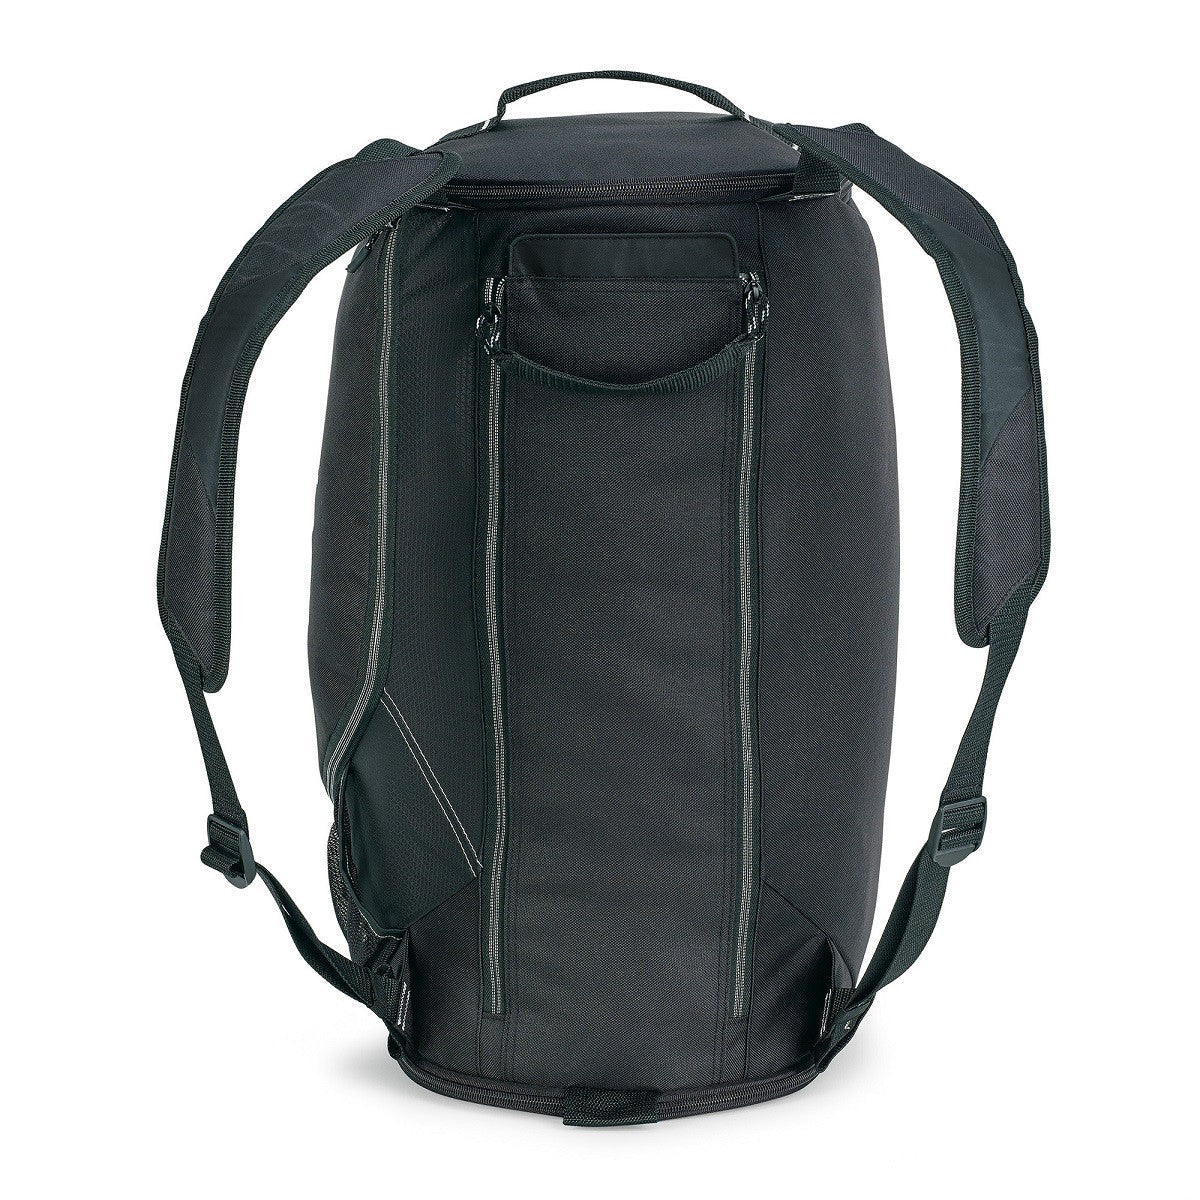 Convertible Duffel Backpack Sports Bag